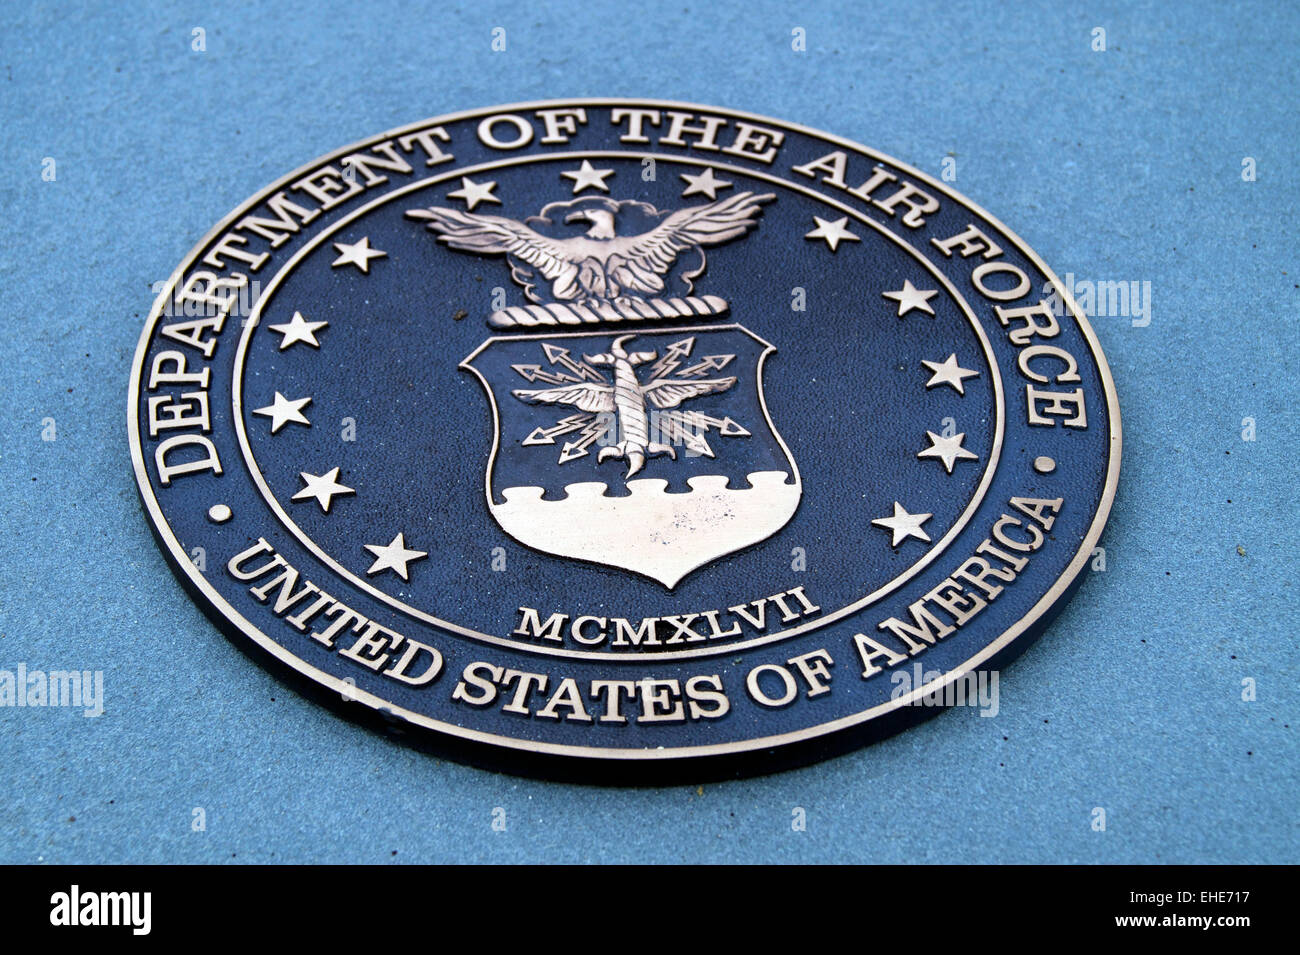 A brass relief of the Seal of the United States Air Force - Stock Image